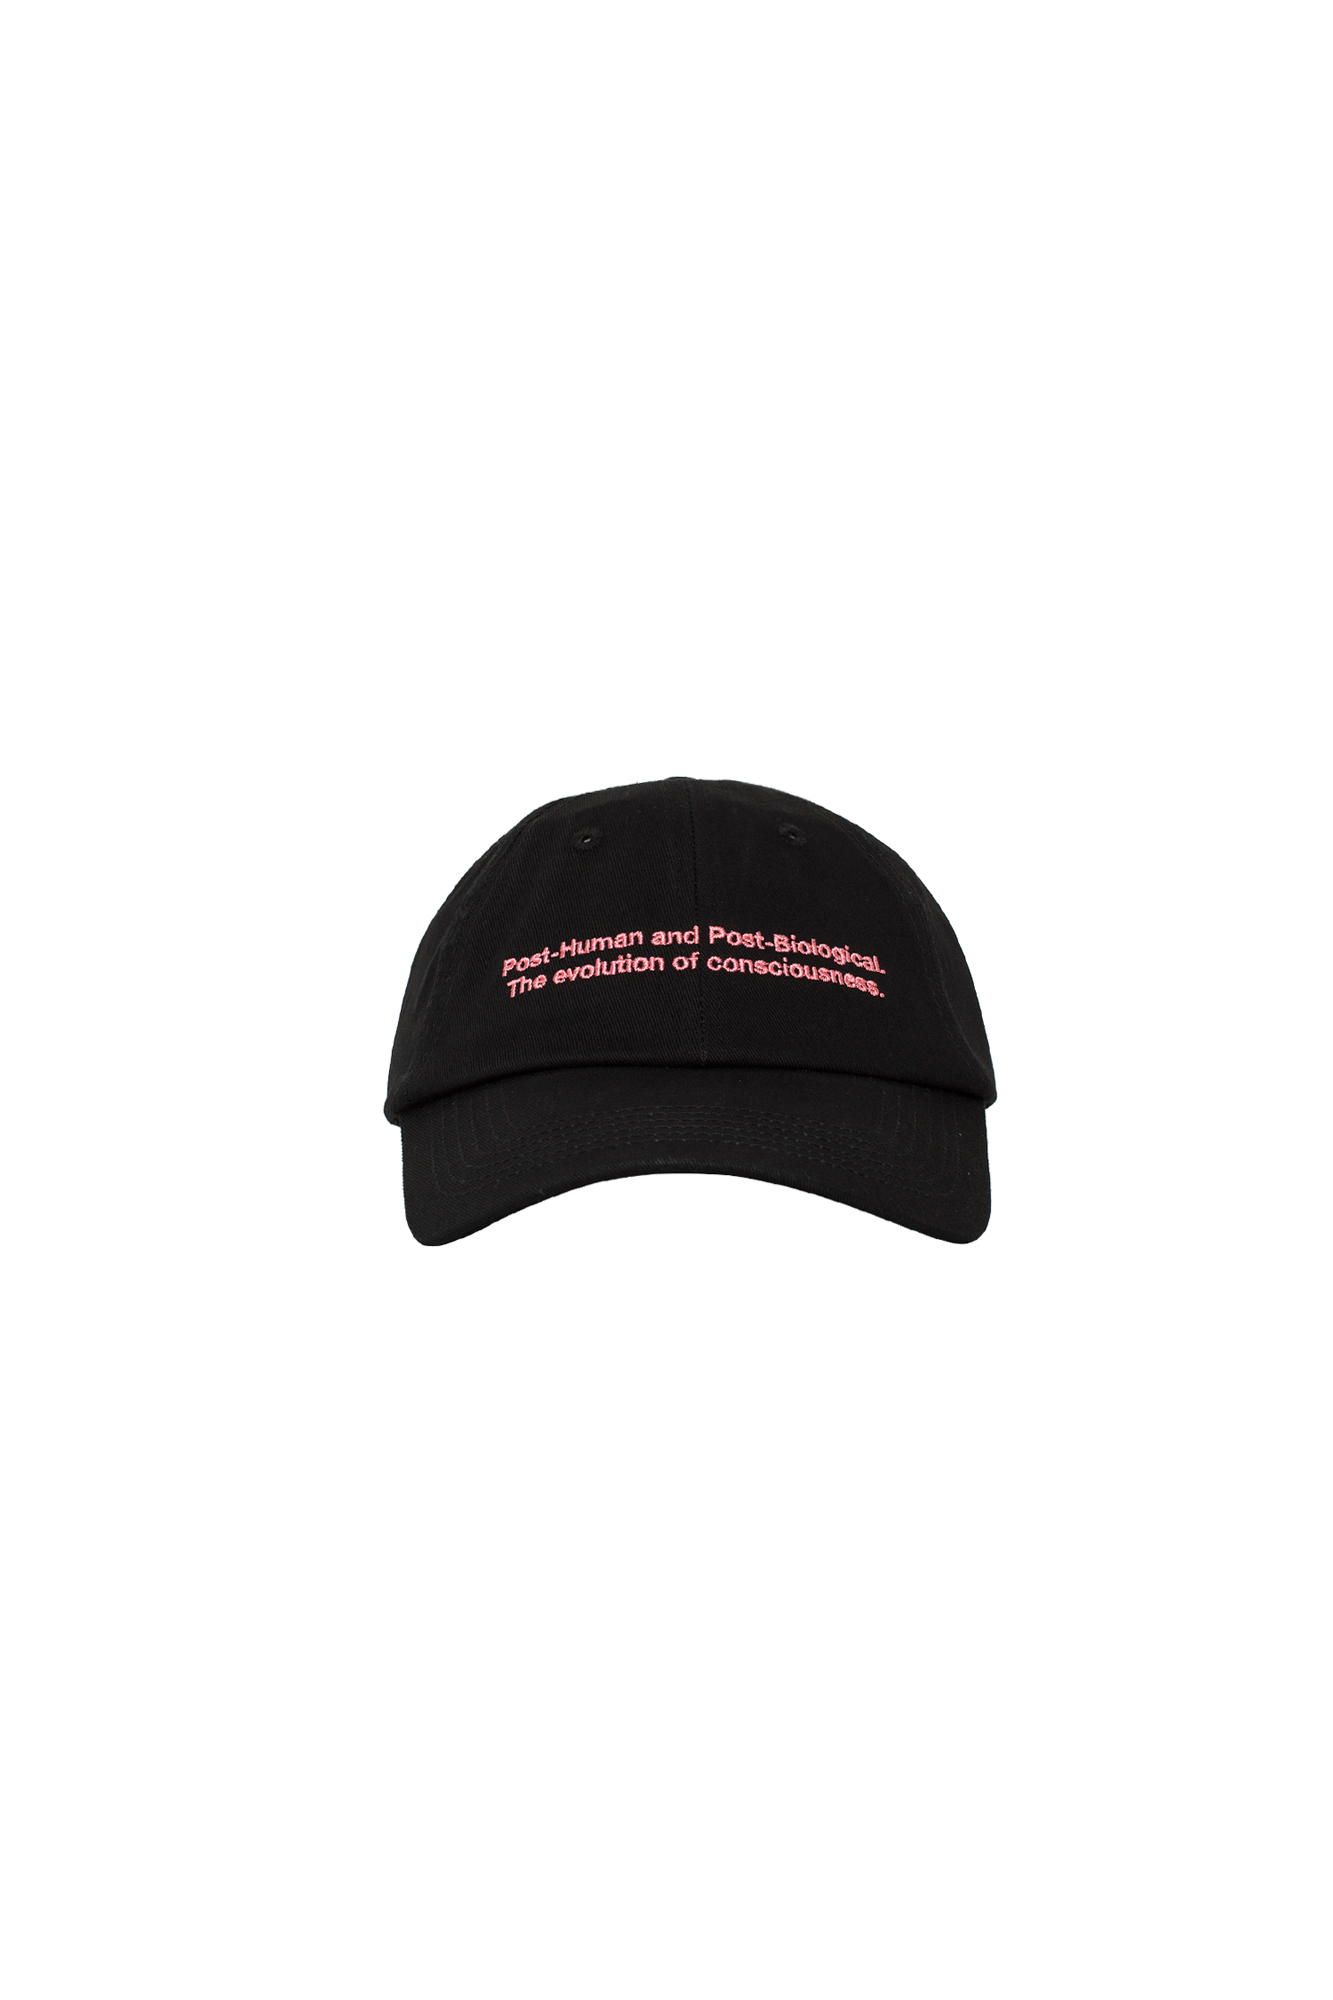 Post-Huma Baseball Cap